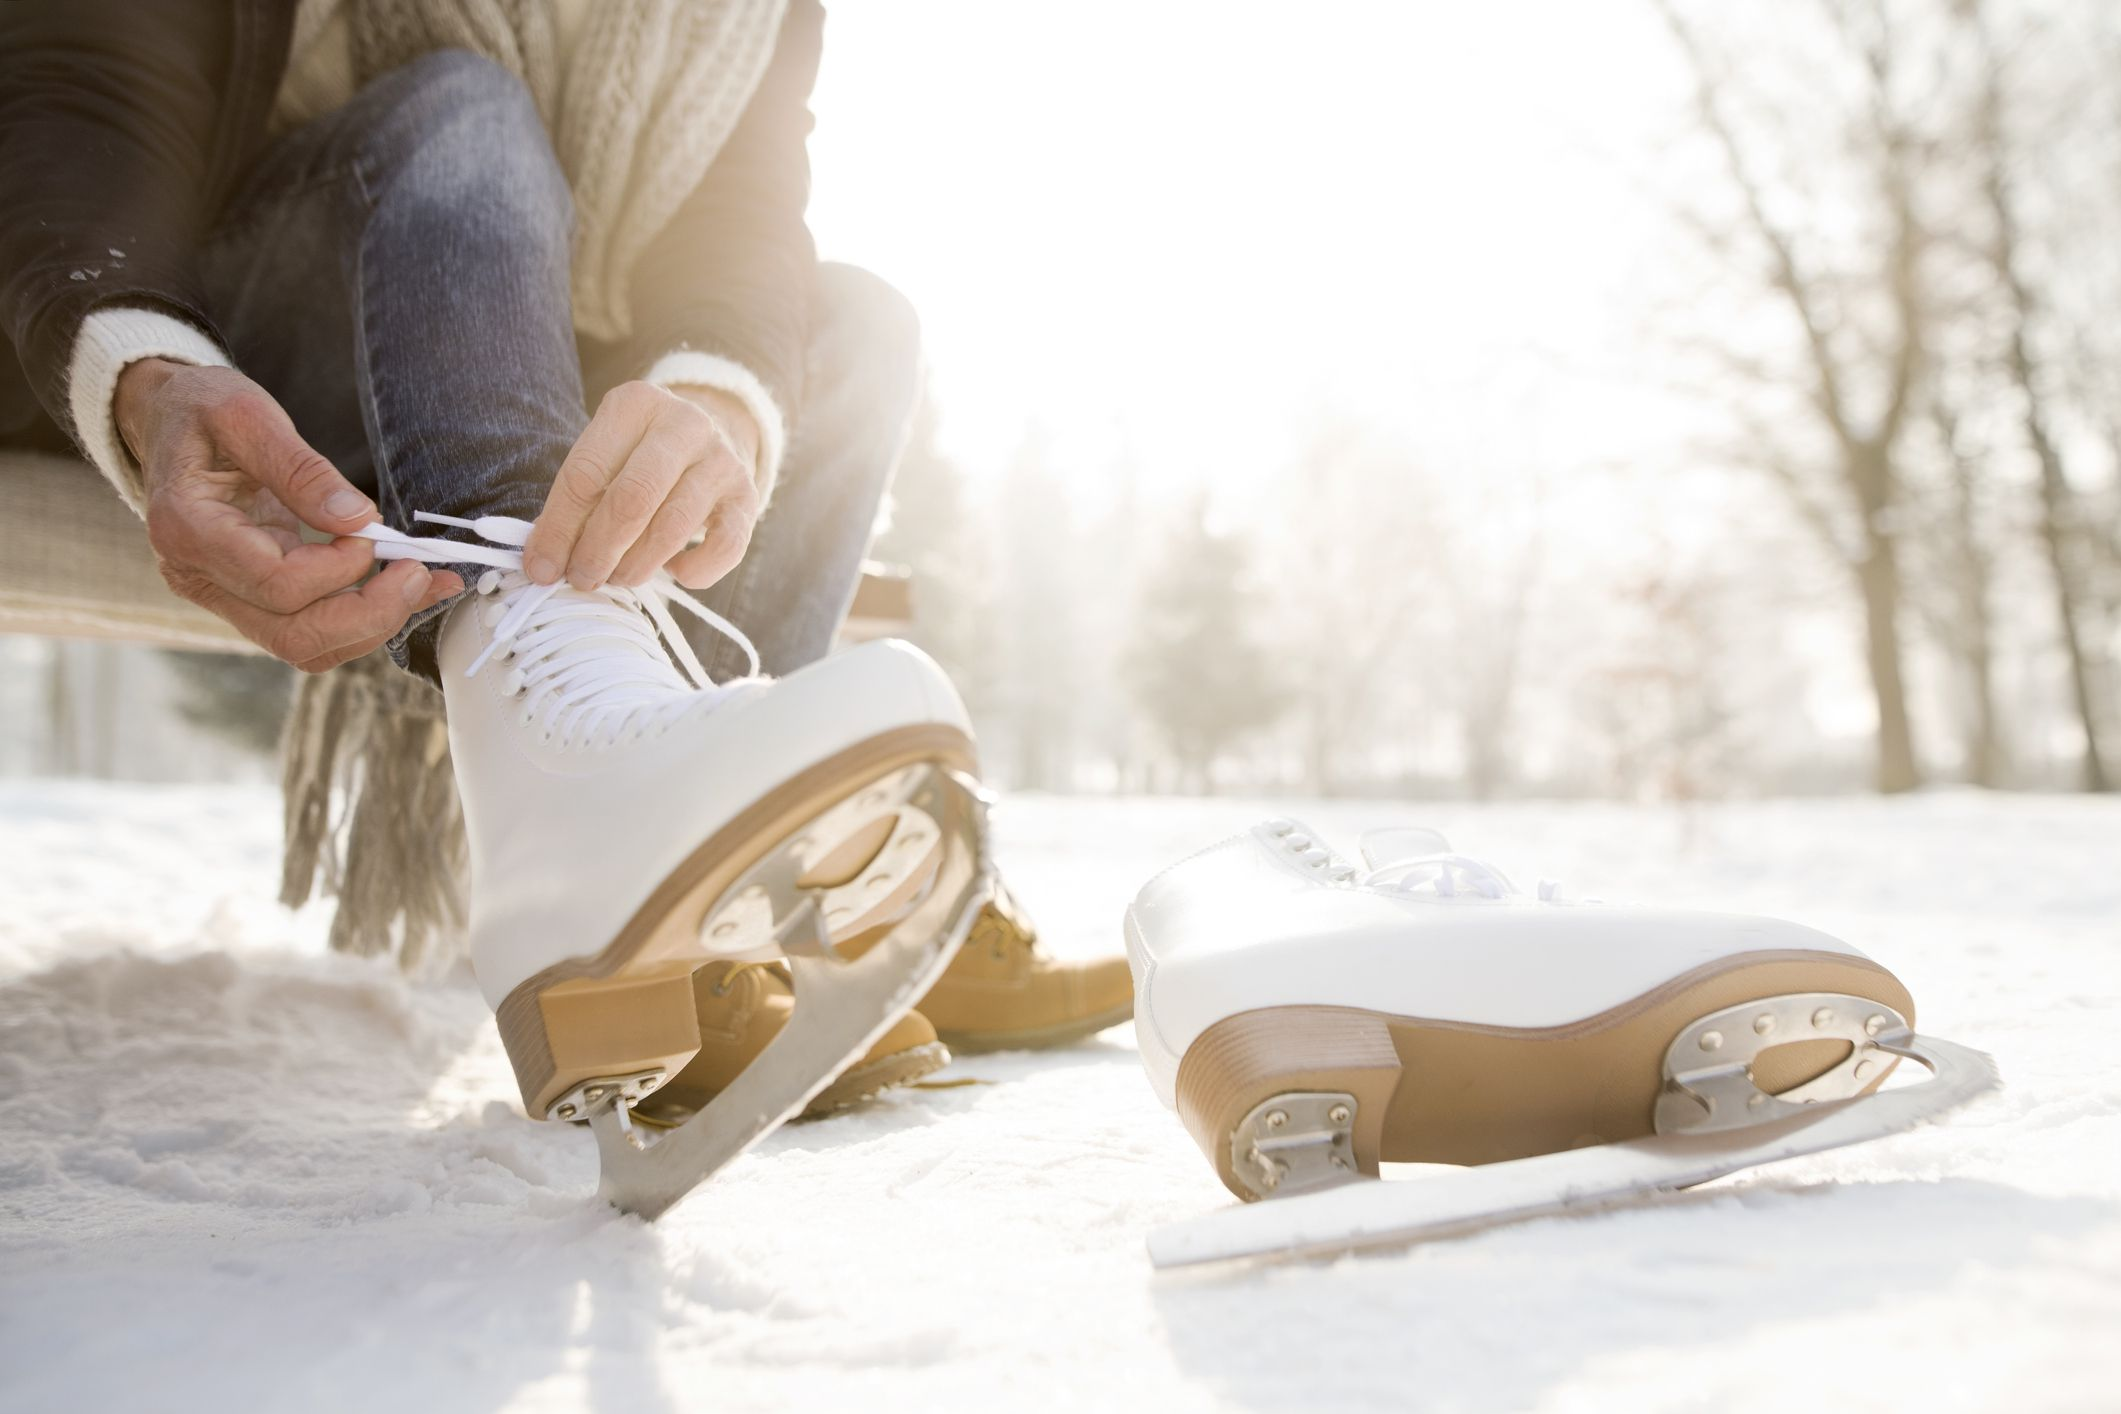 The 10 Best Ice Skates of 2021